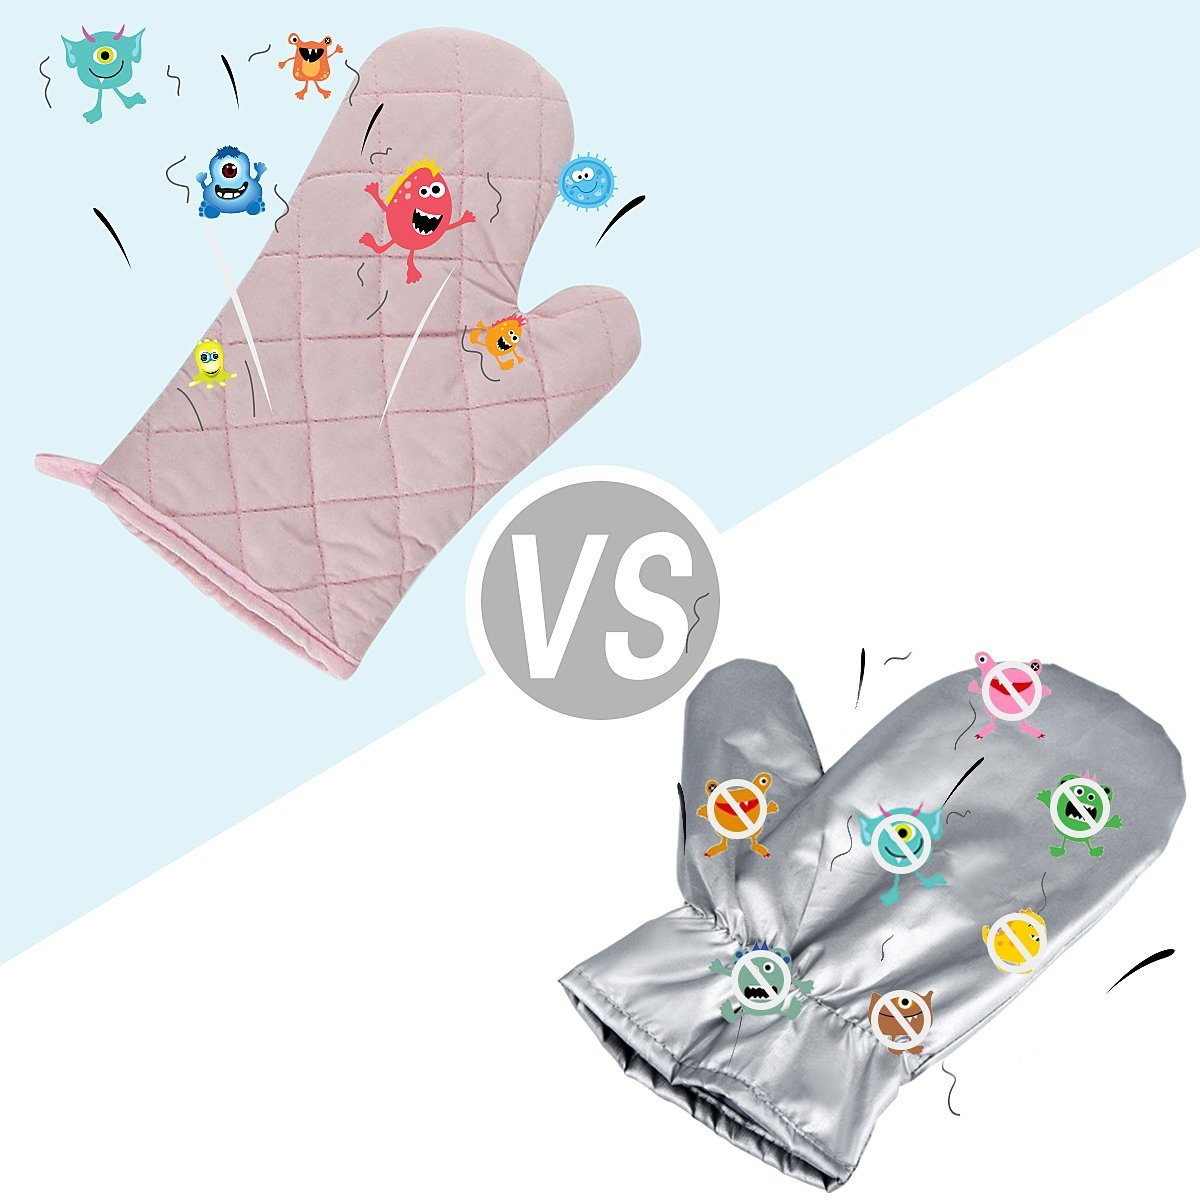 Upgraded Garment Steamer Ironing Gloves Mitt Tingtio Anti Steam Gloves Durable Heat Resistant Waterproof Protective Ironing Glove for Garment Steamer Silver-1 Pair by Tingtio (Image #4)